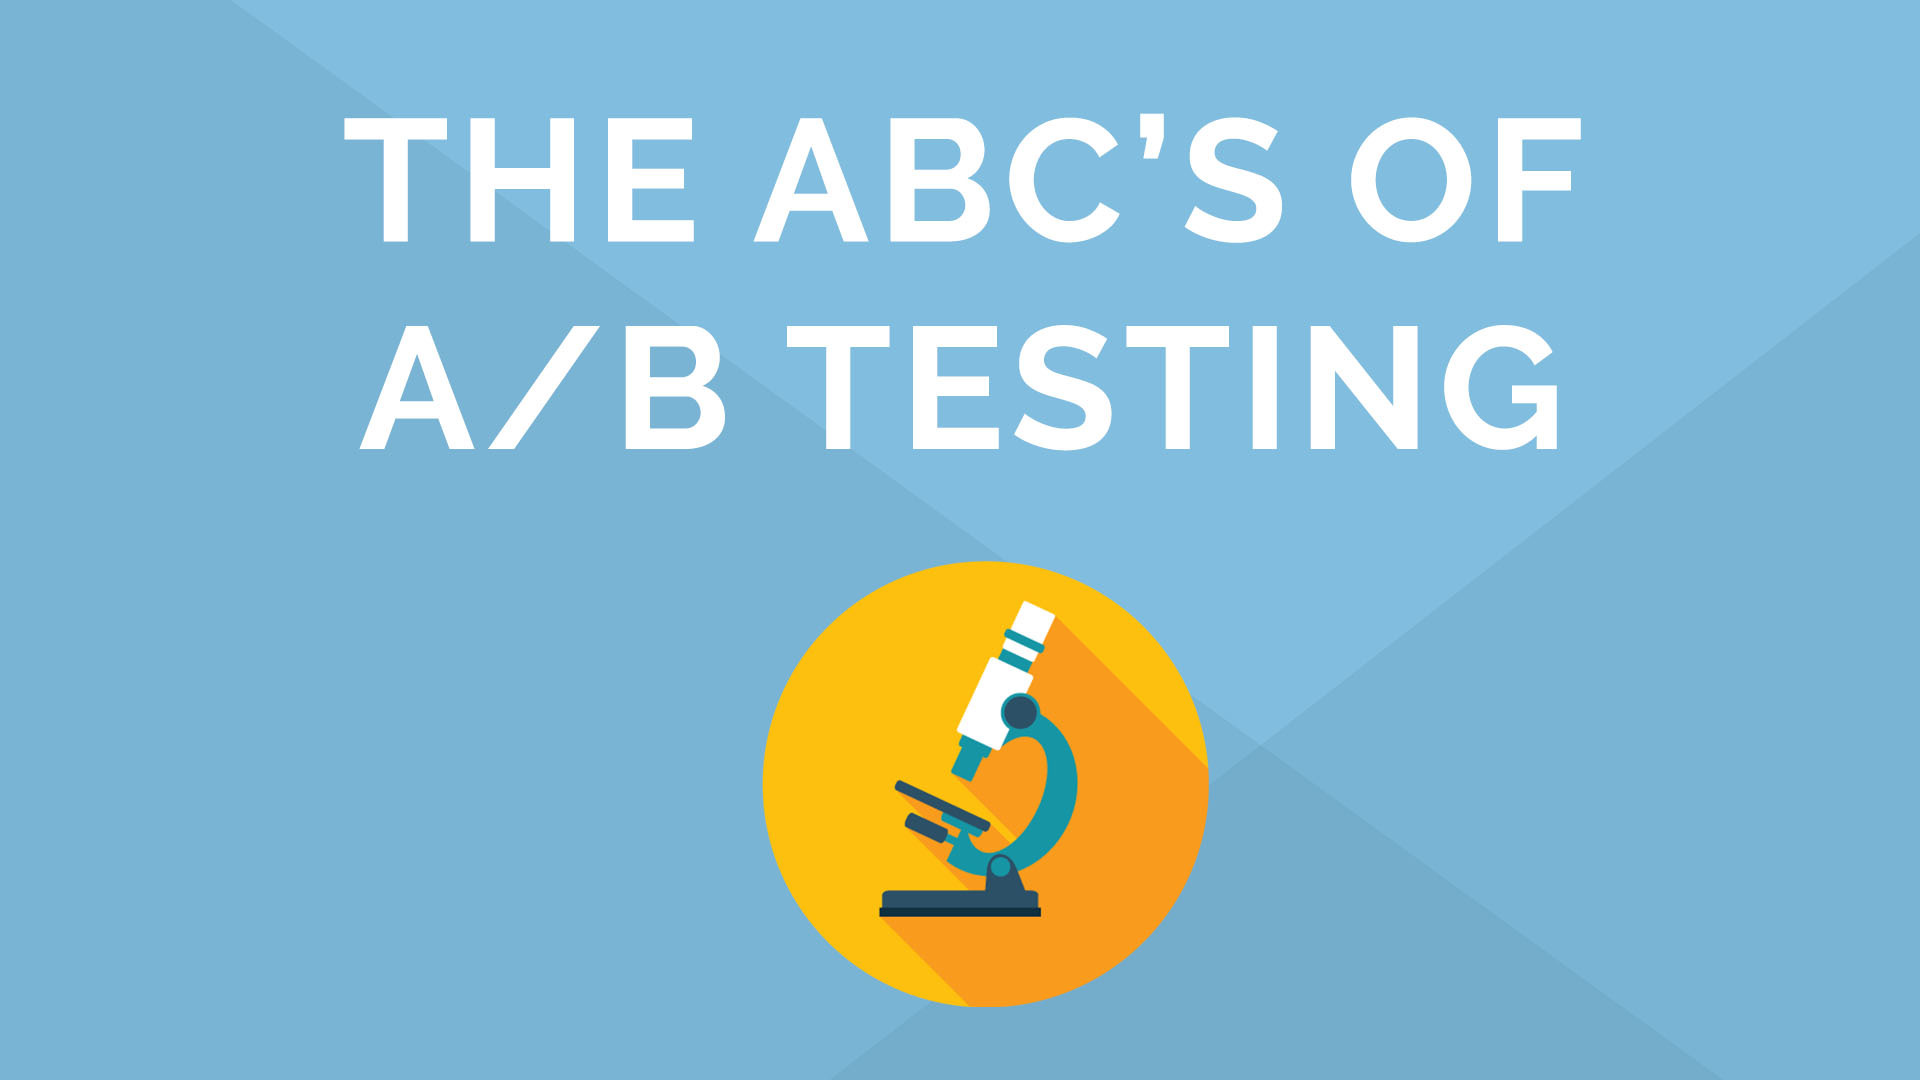 The ABCs of A/B Testing in 15 minutes